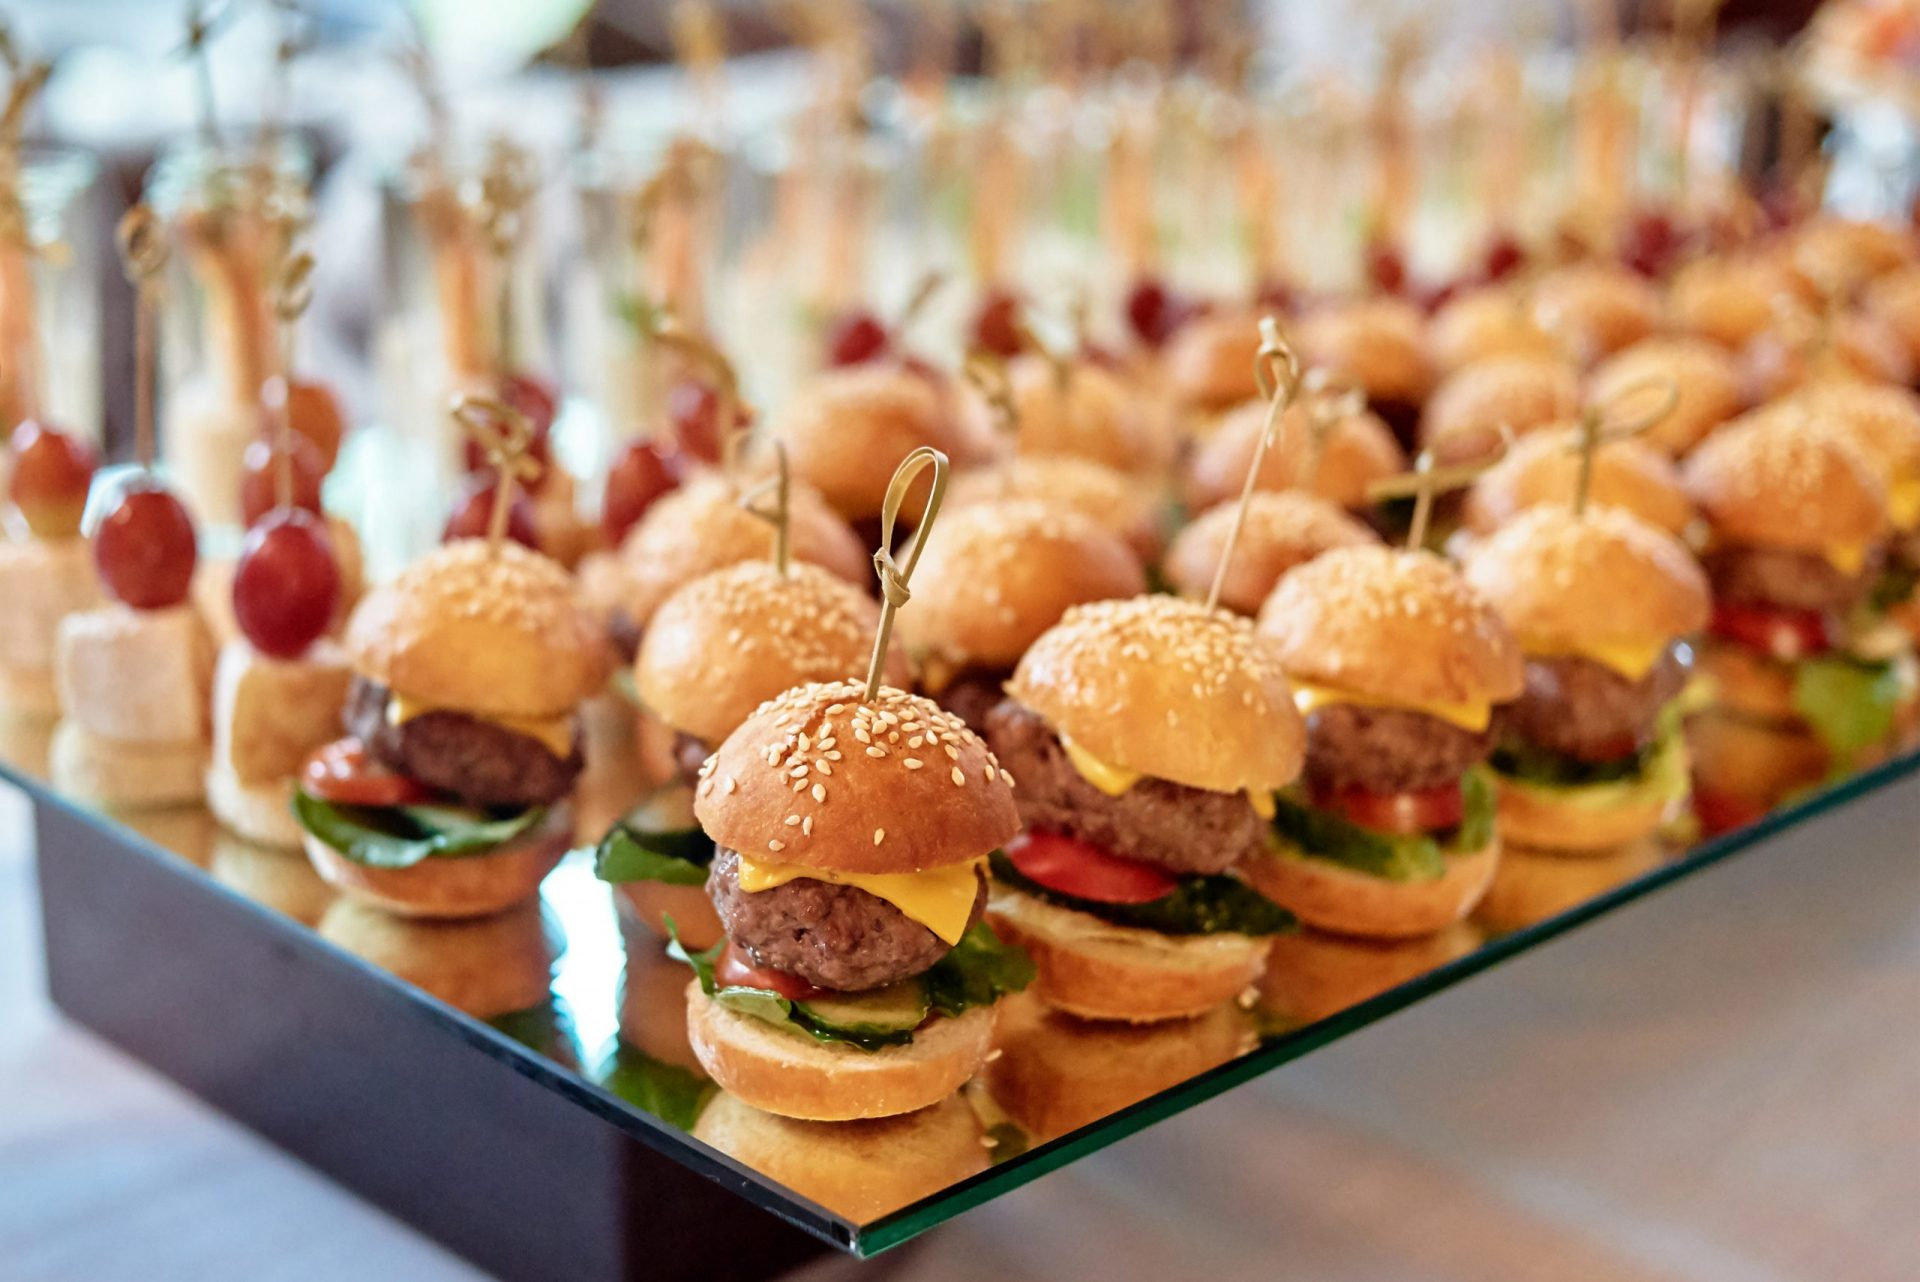 4 Themed Catering Ideas That Will Leave Guests Smiling